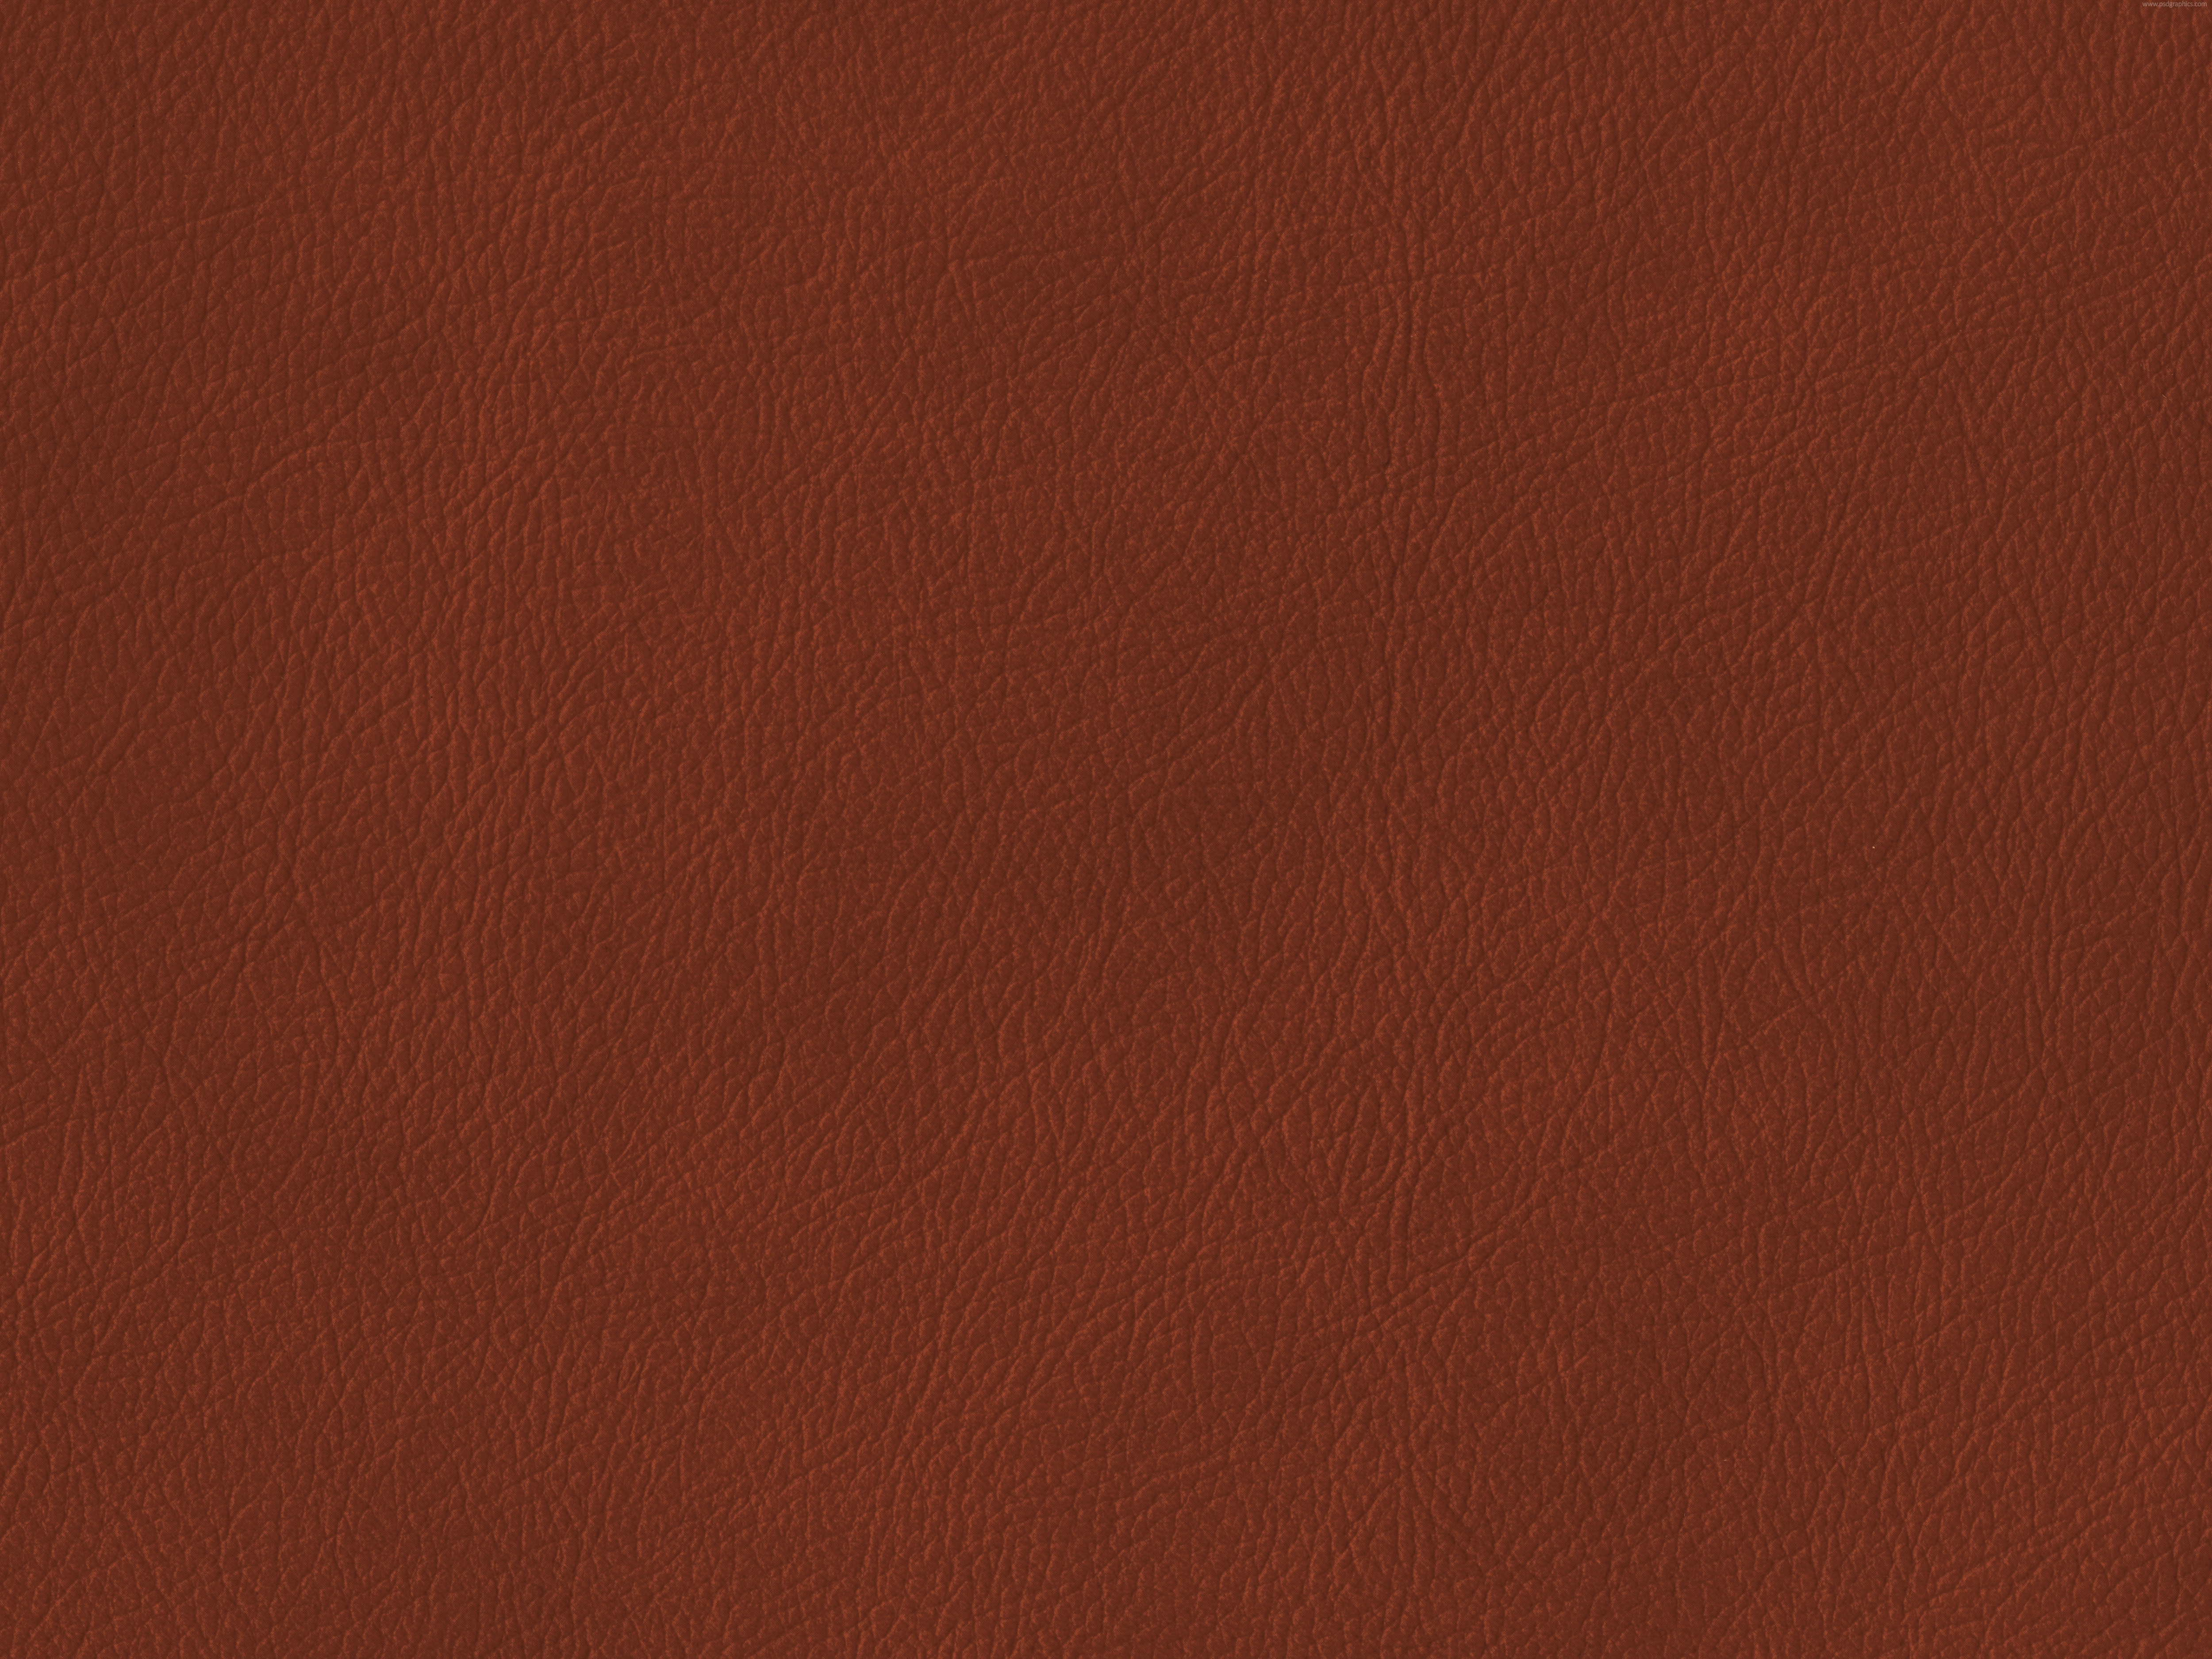 Brown Leather Texture Psdgraphics